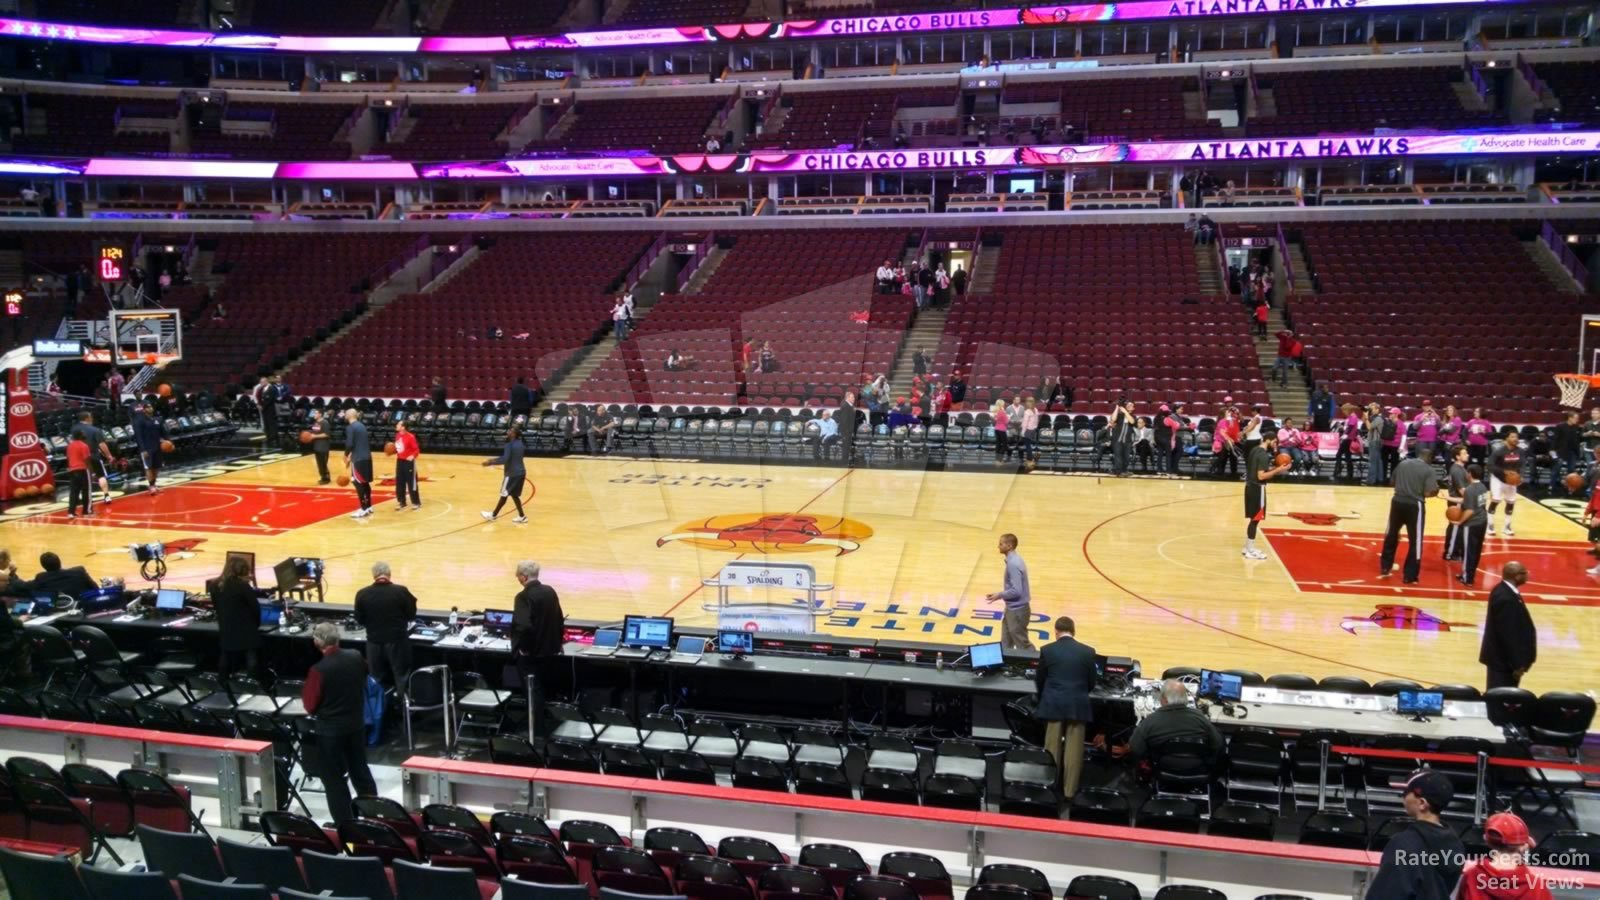 Chicago Bulls Seat View for United Center Section 122, Row 10